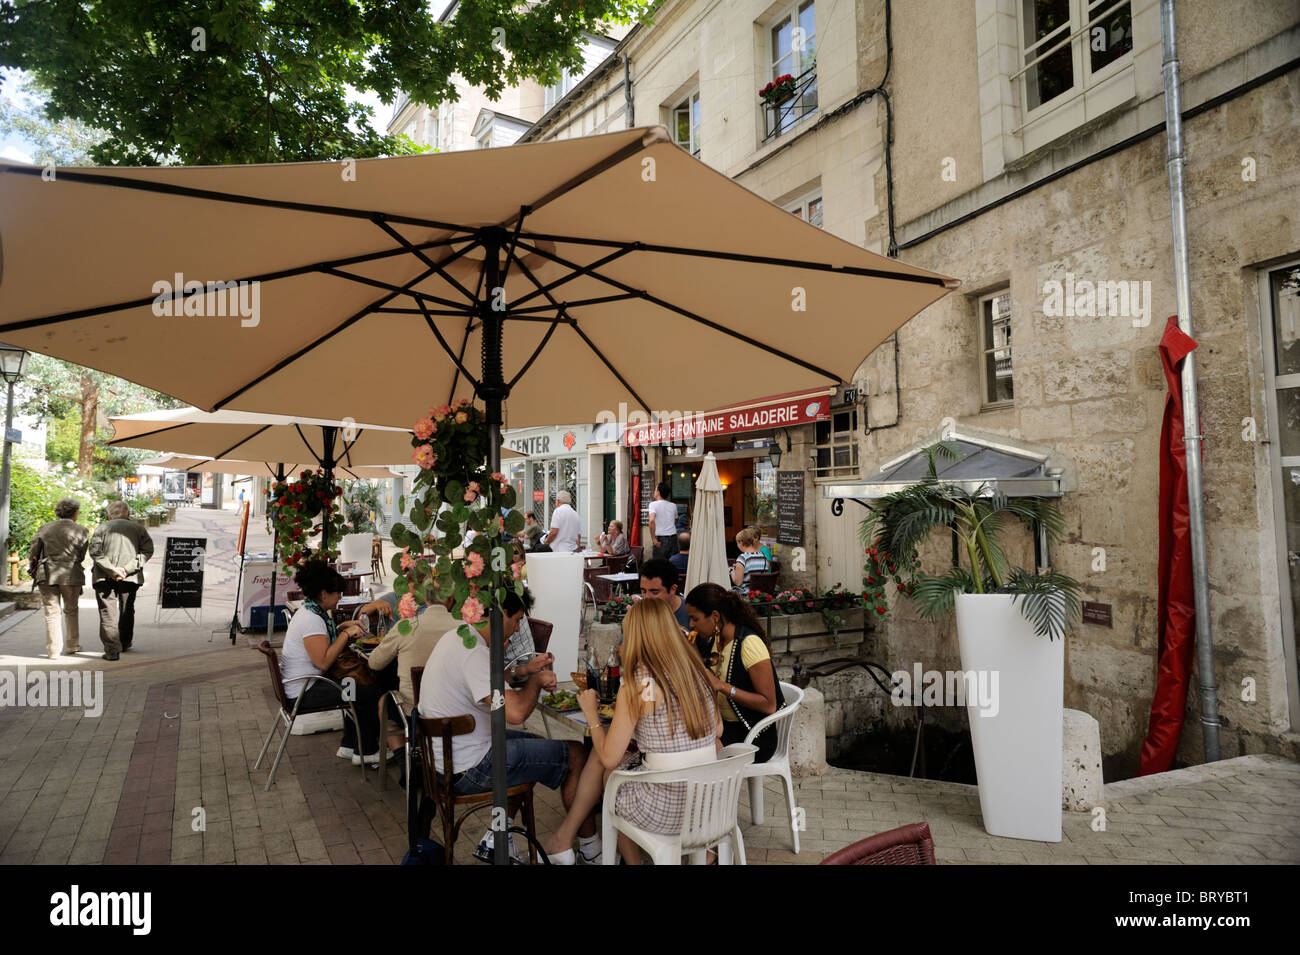 france, loire valley, blois, cafe - Stock Image